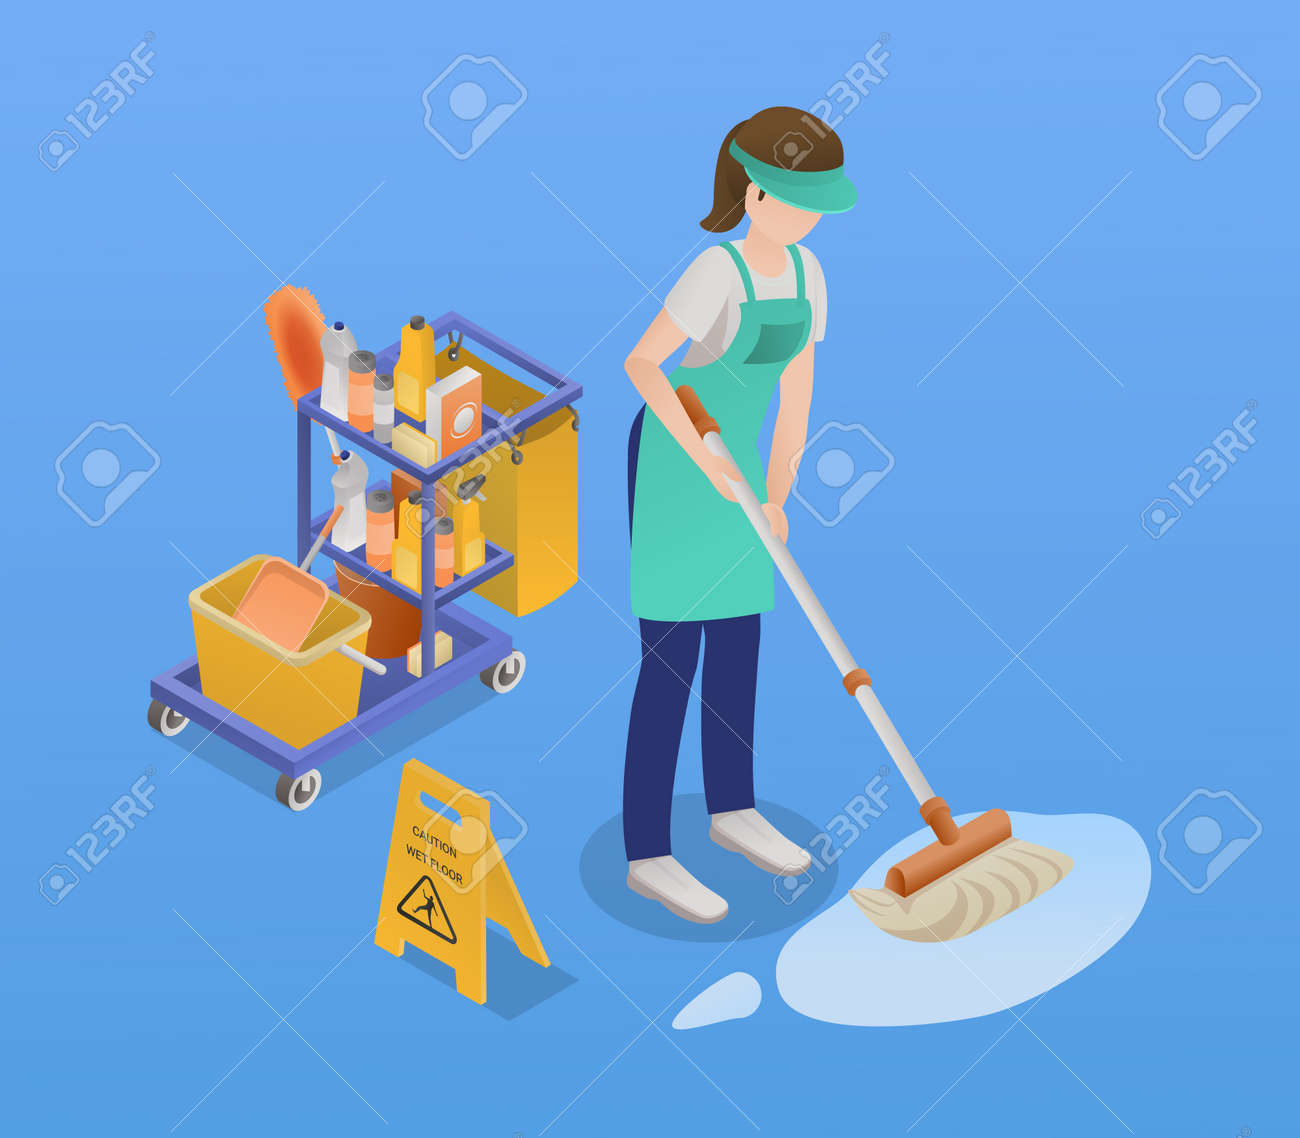 Isometric Professional Cleaning Service Composition - 171636287